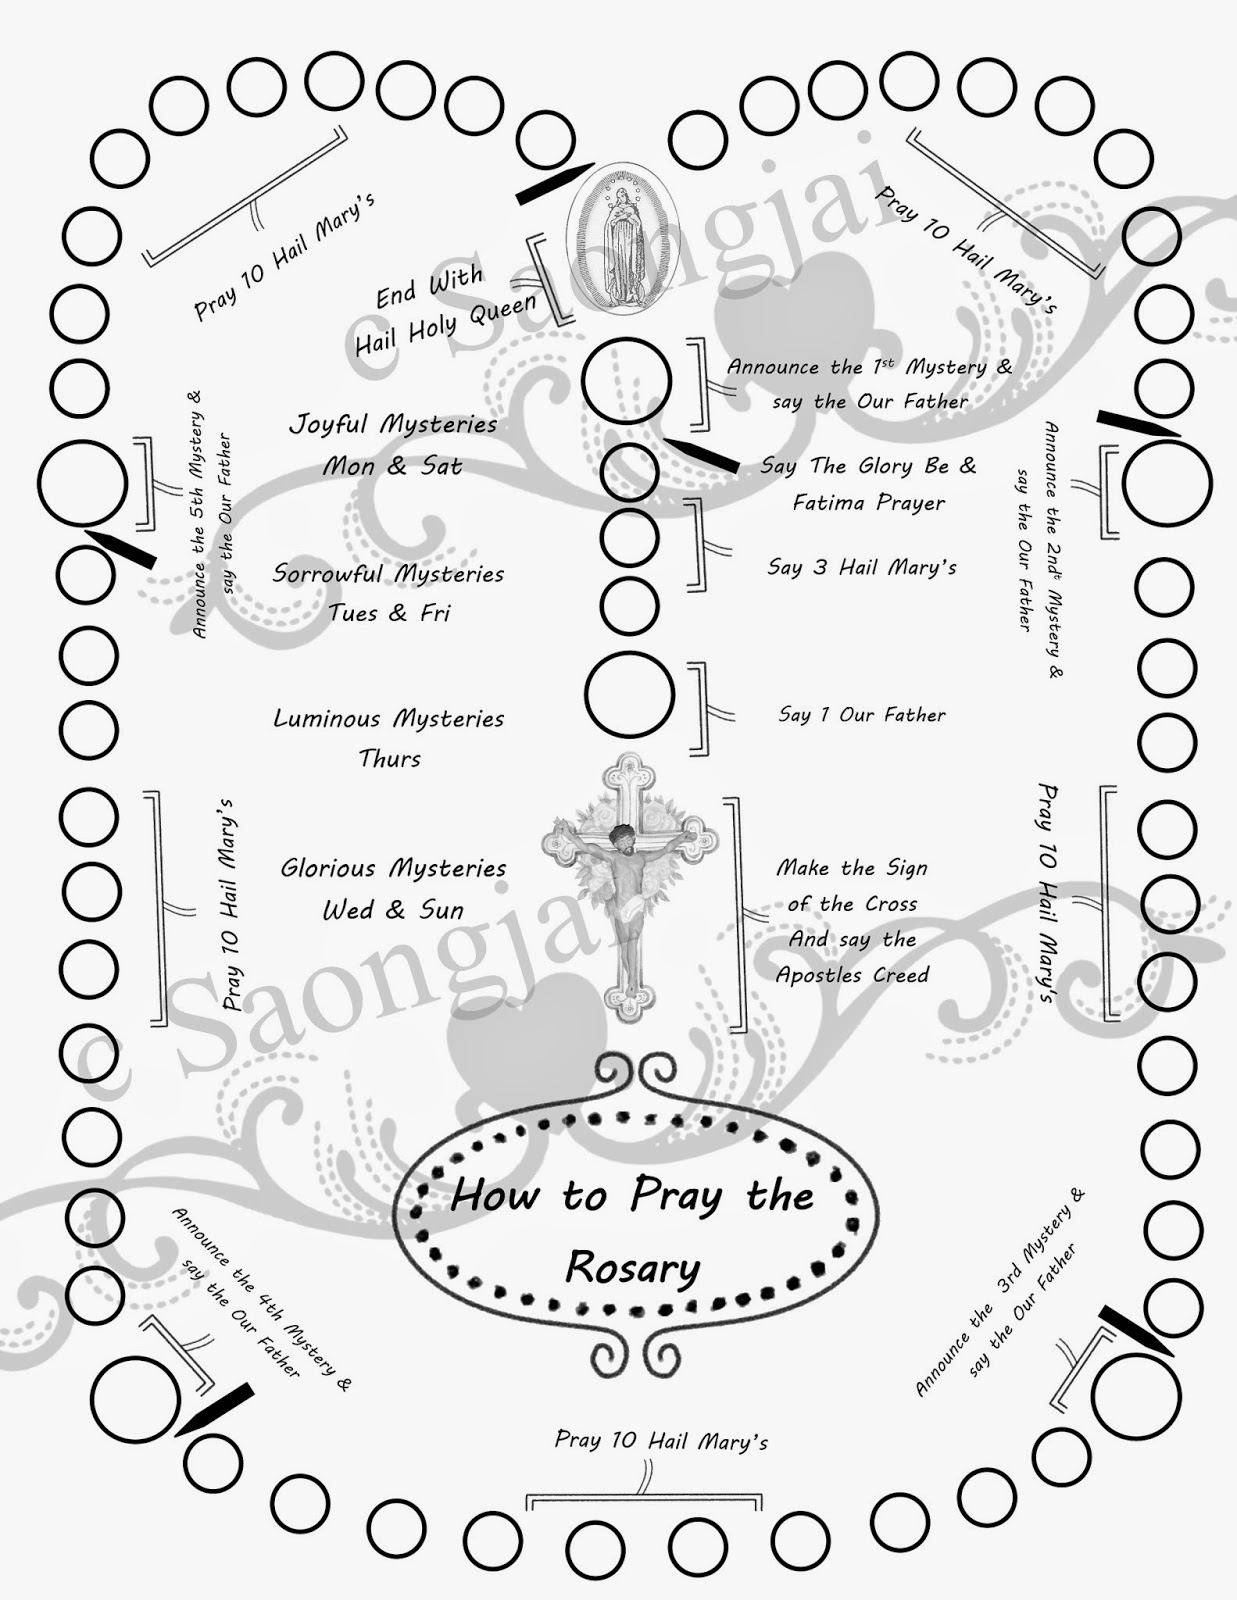 Rosary Beads Coloring Page At Getcolorings